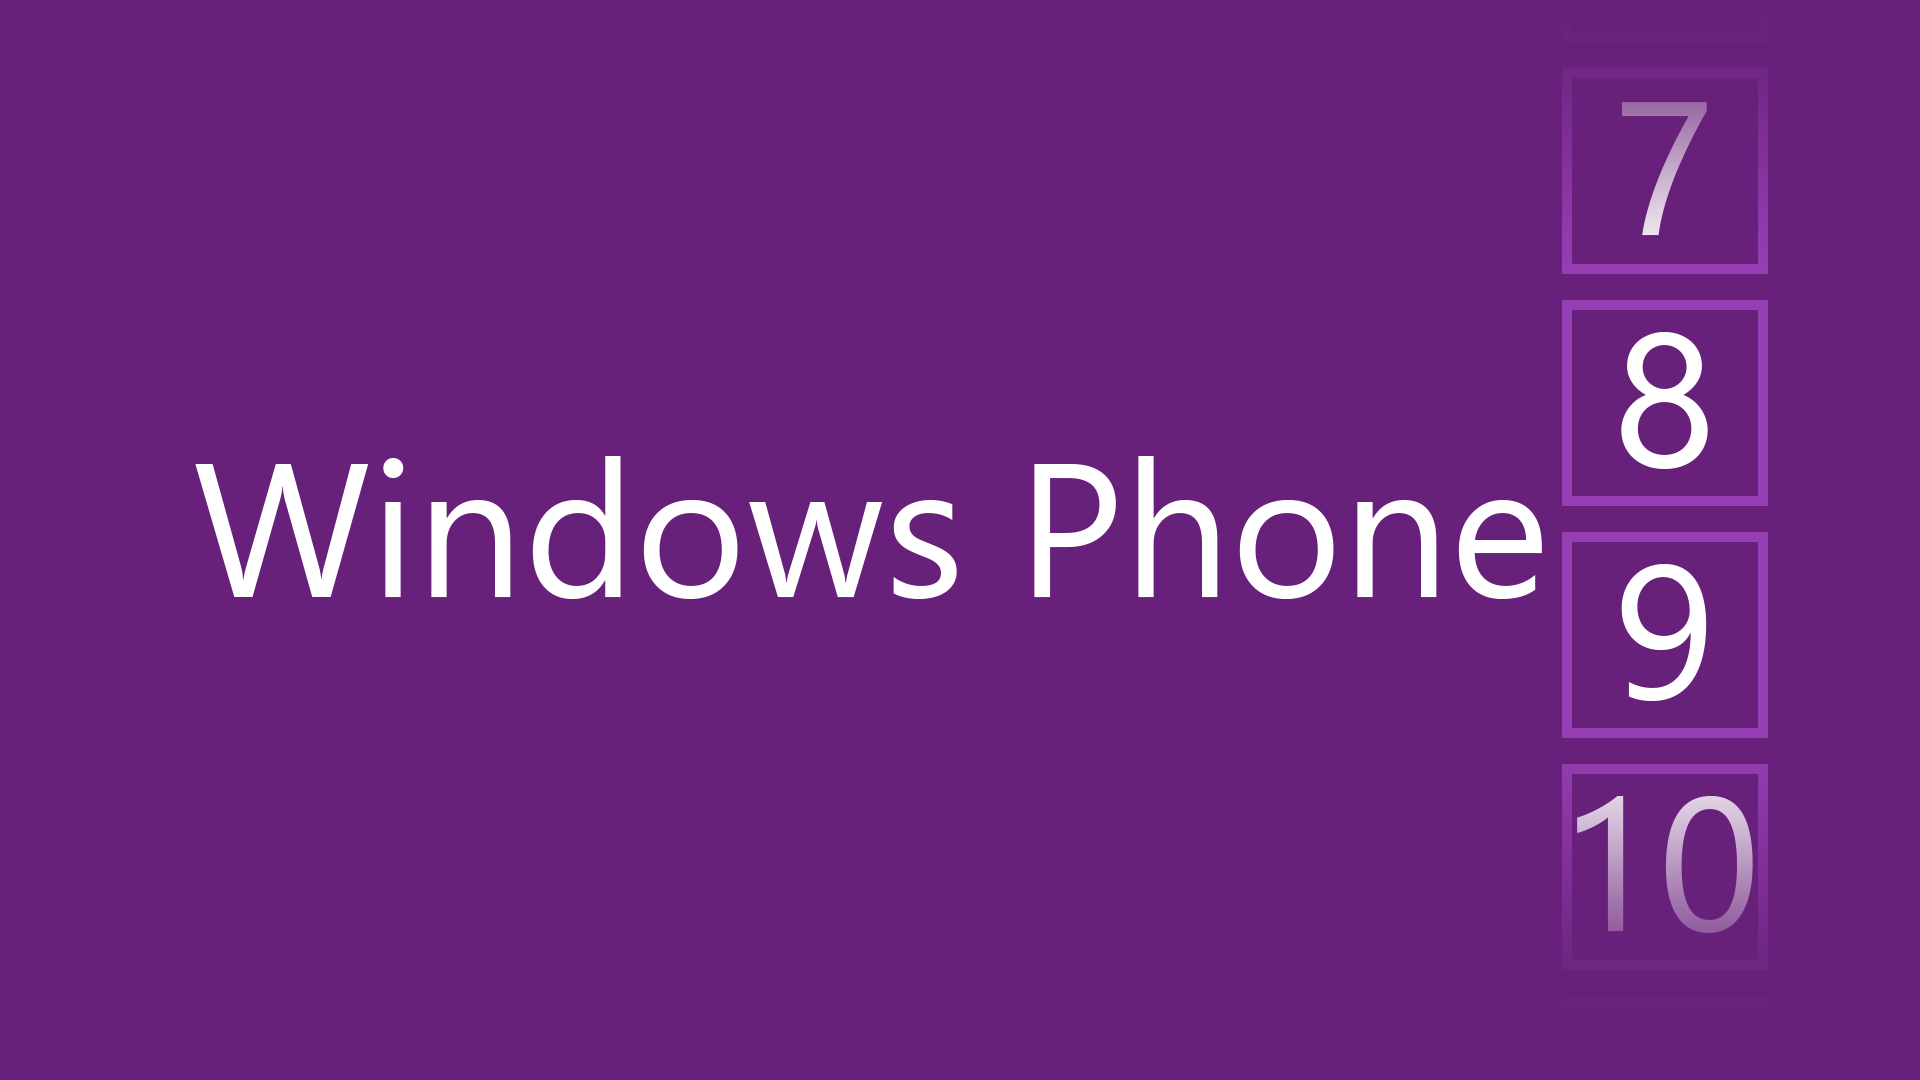 Windows Phone 8.2